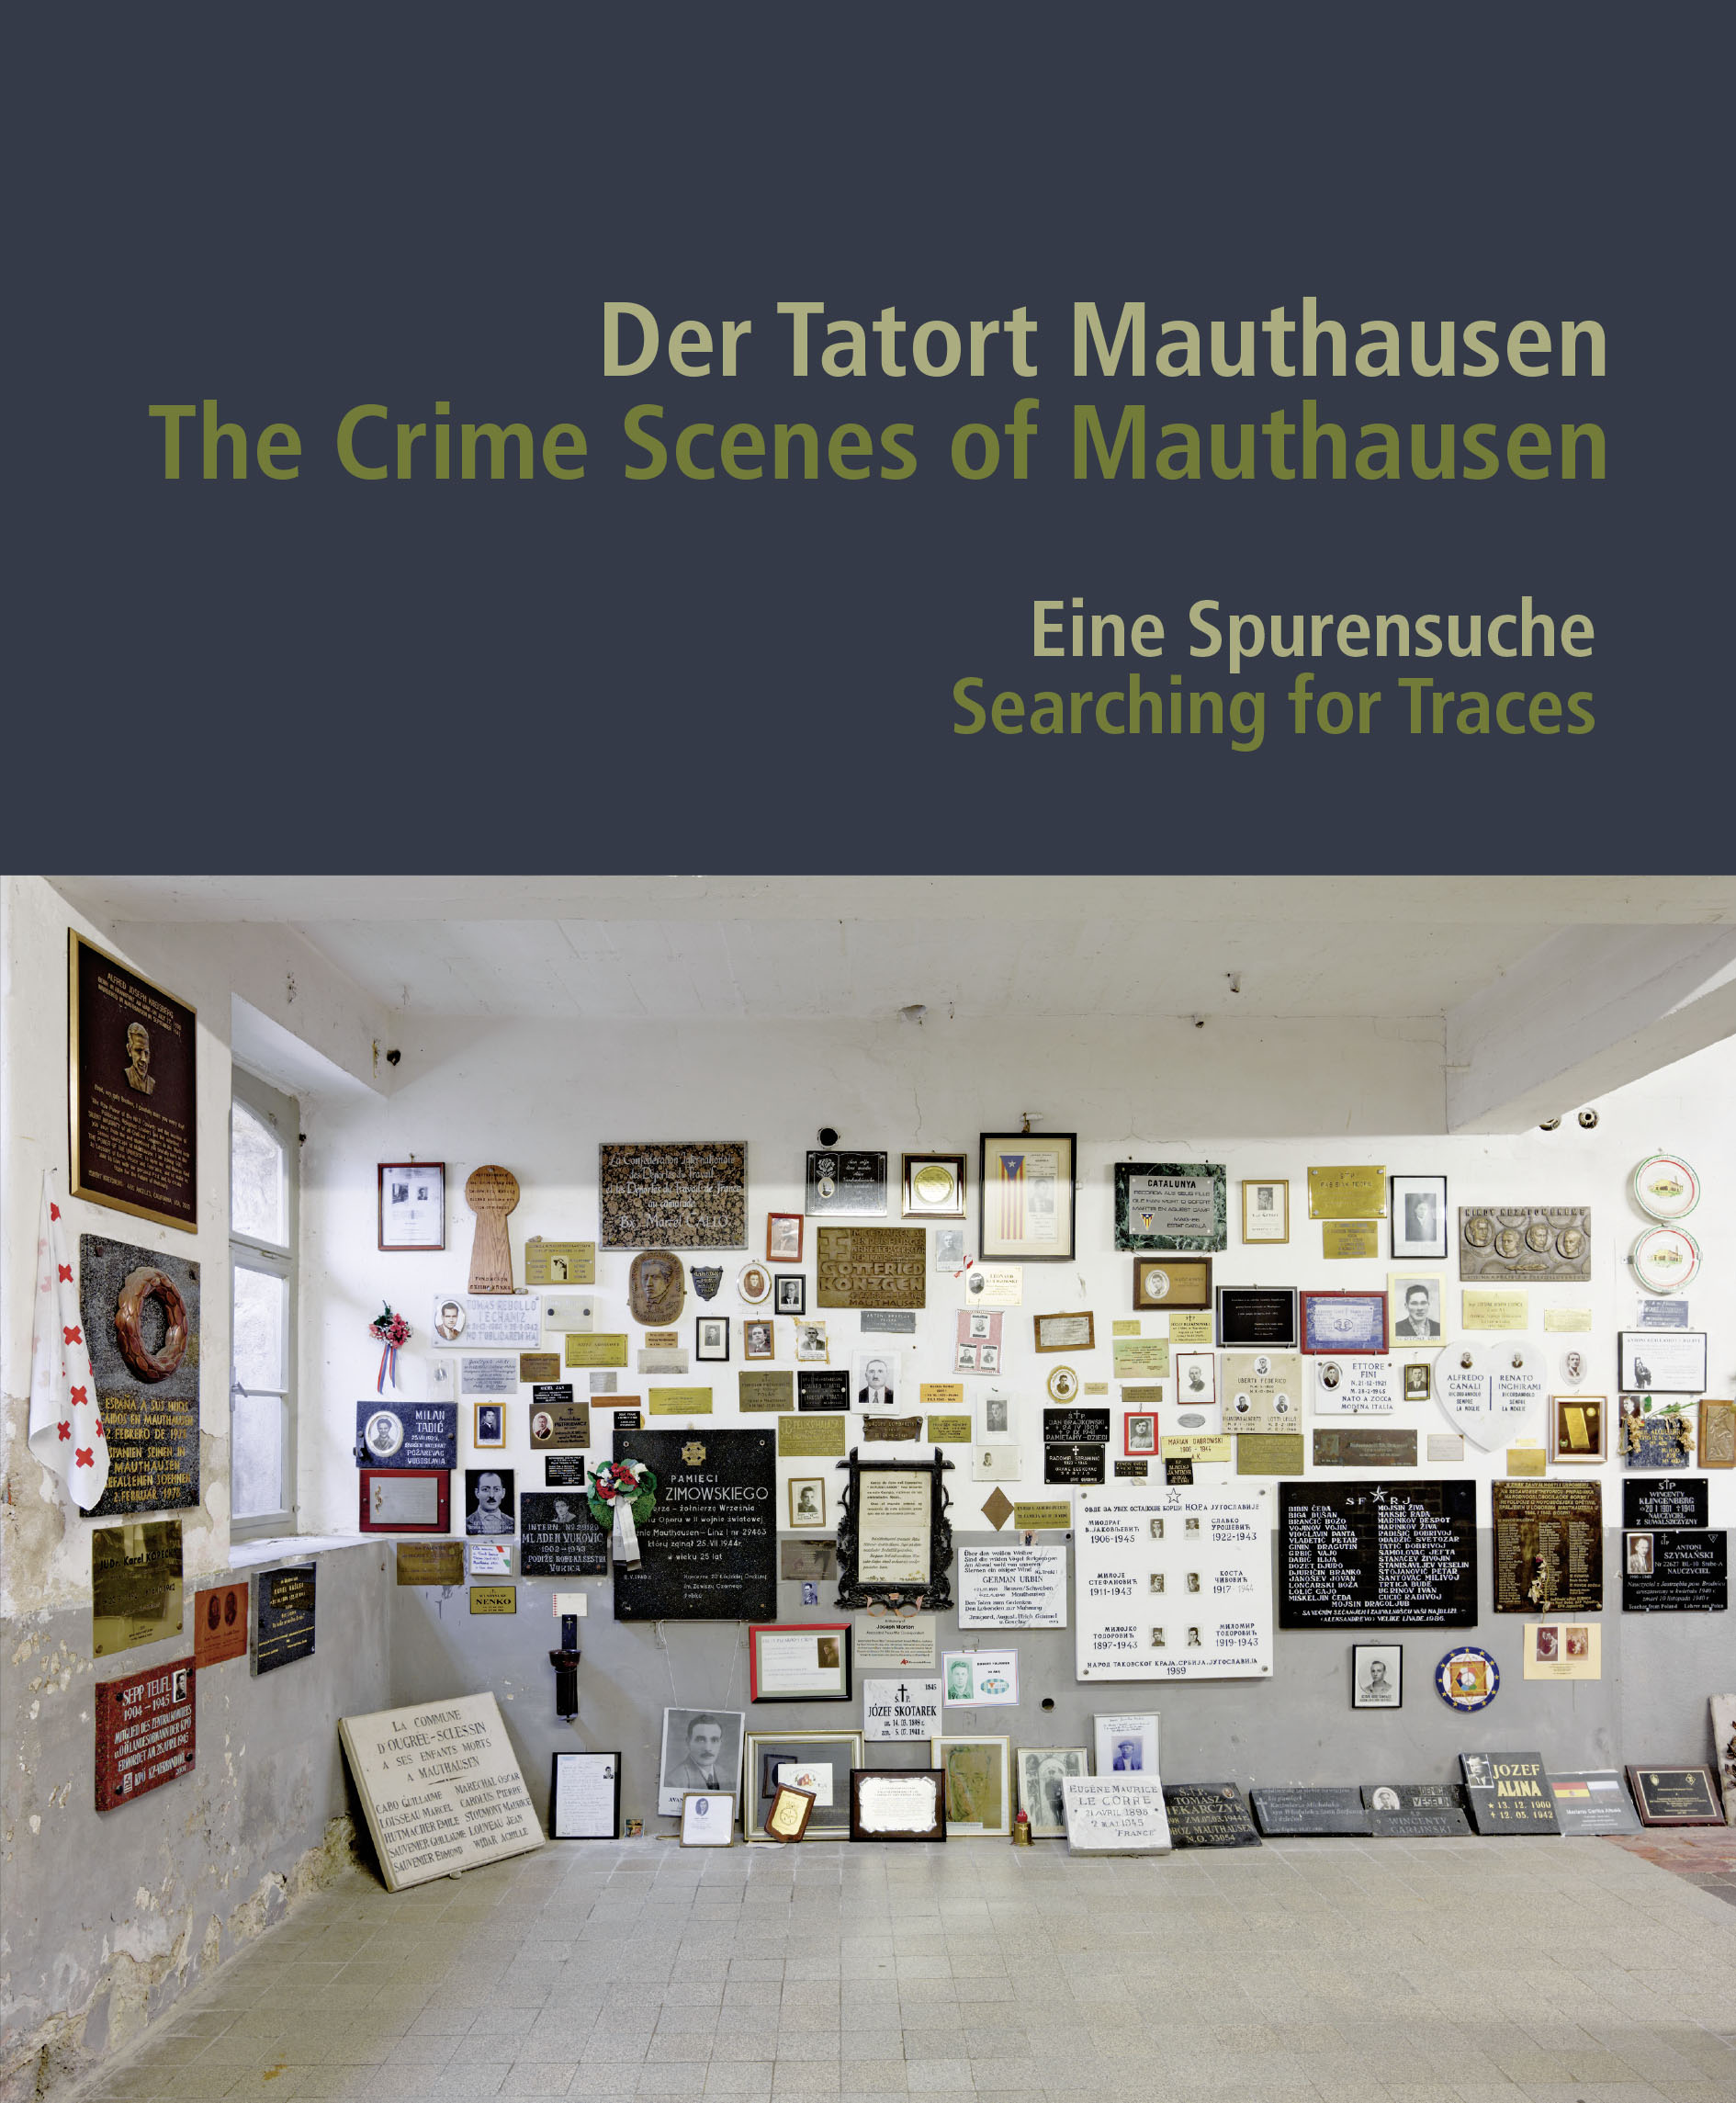 Der Tatort Mauthausen / The Crime Scenes of Mauthausen